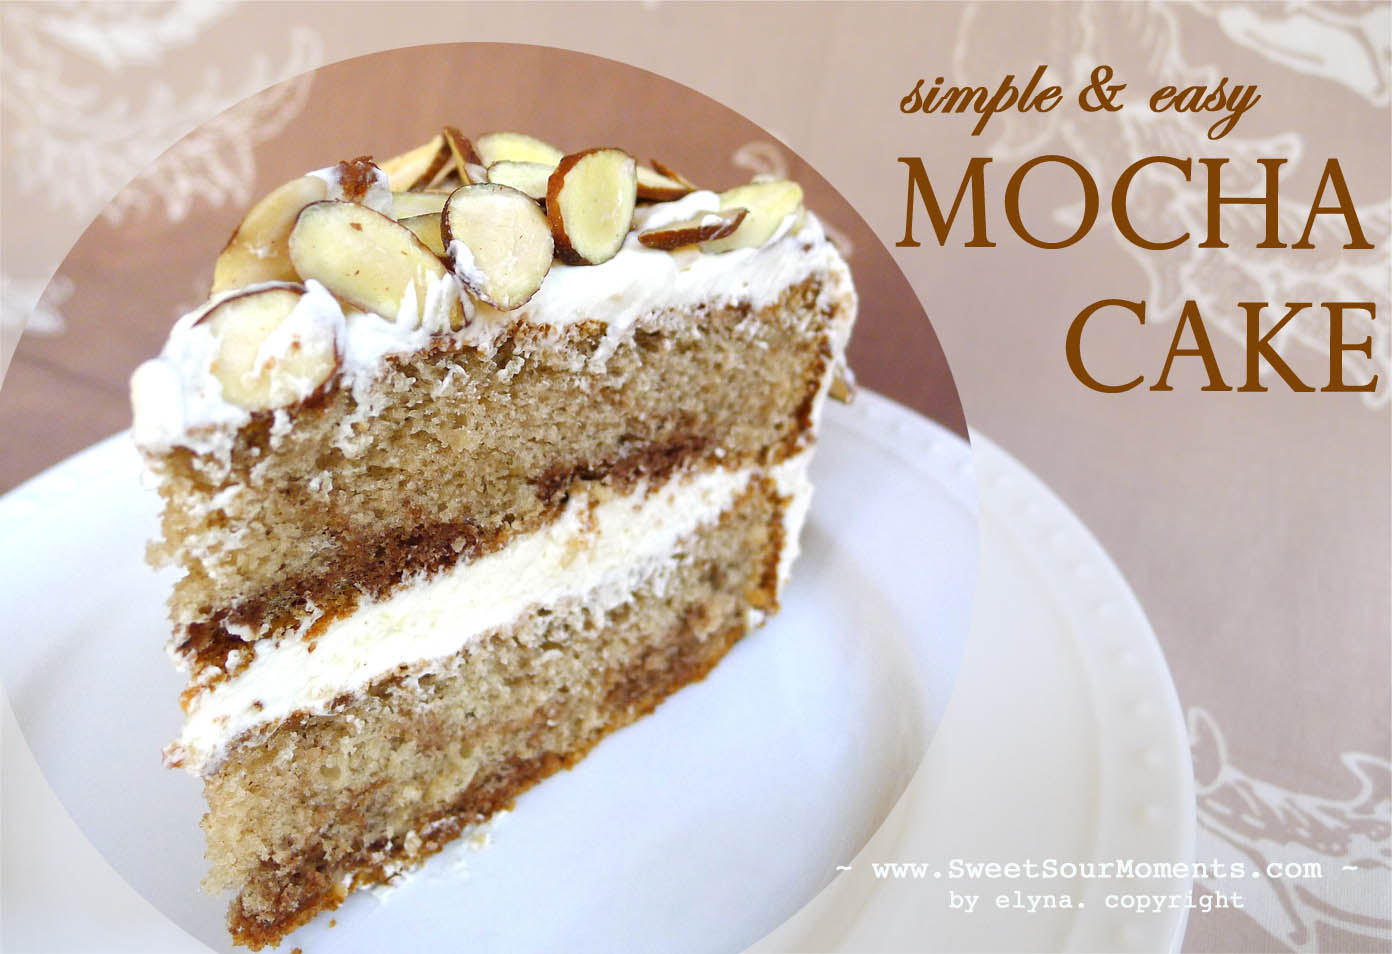 Simple & Easy Mocha Cake | SweetSourMoments